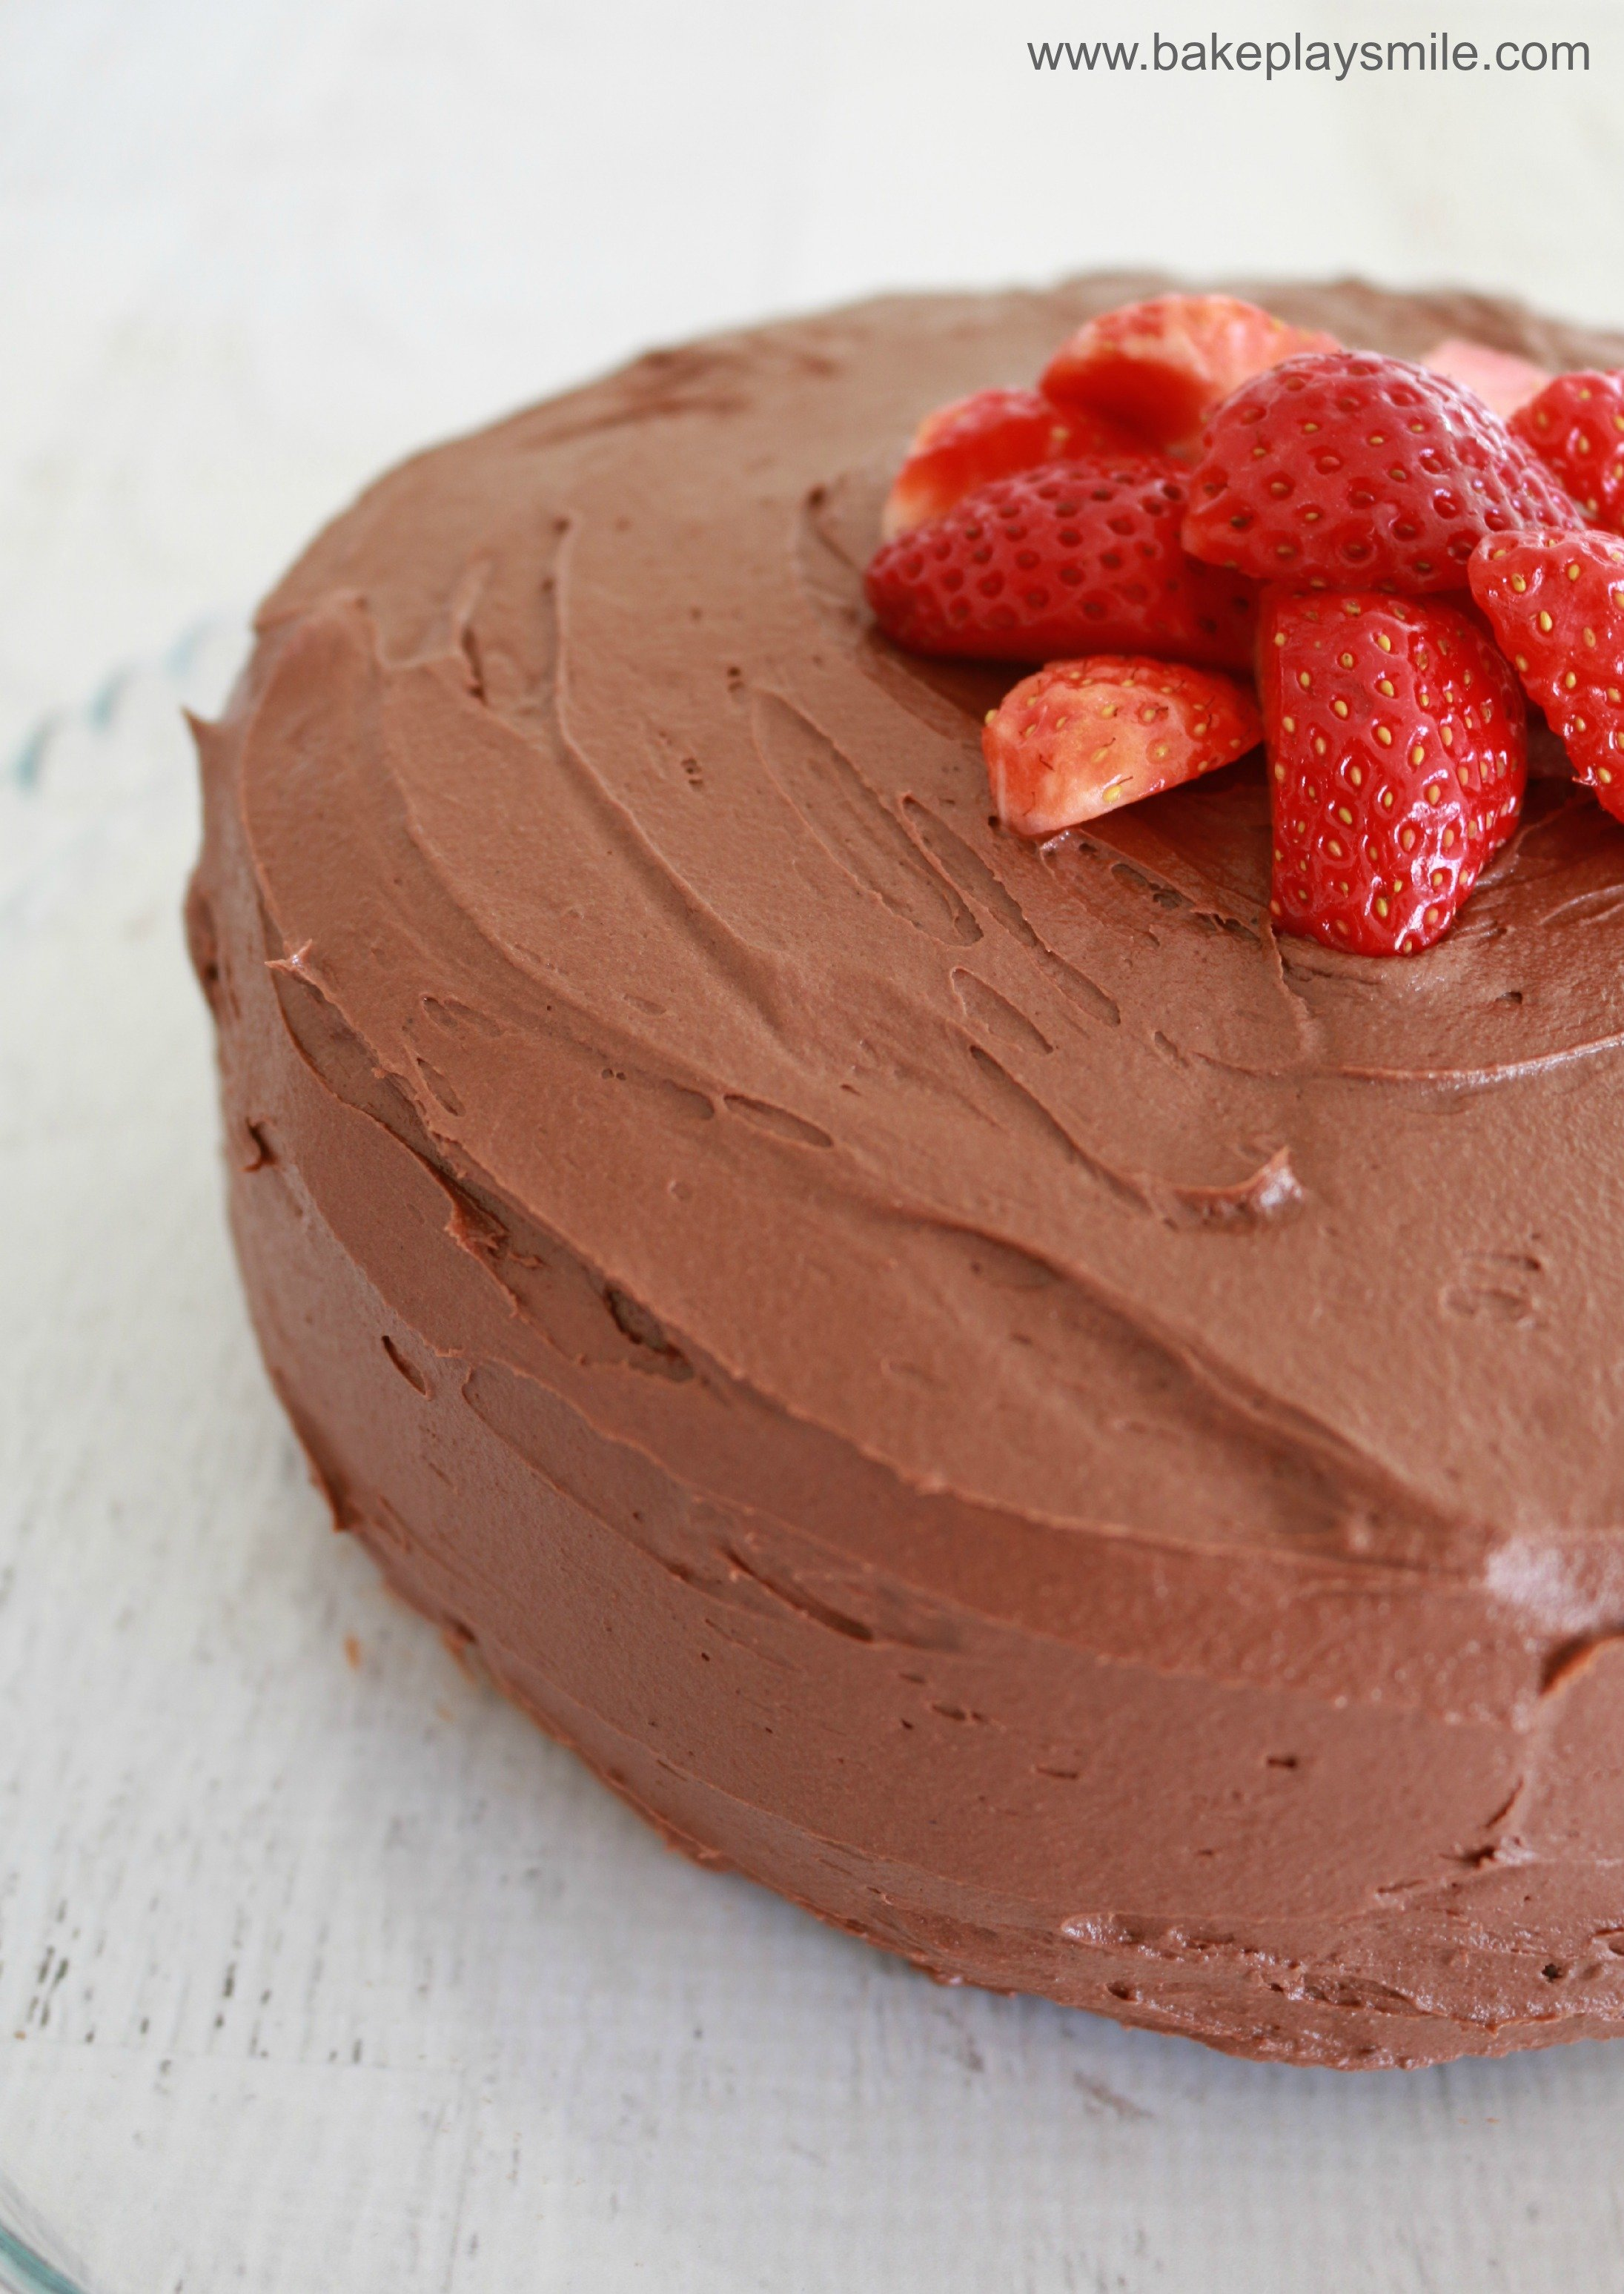 Chocolate mousse cake recipe thermomix